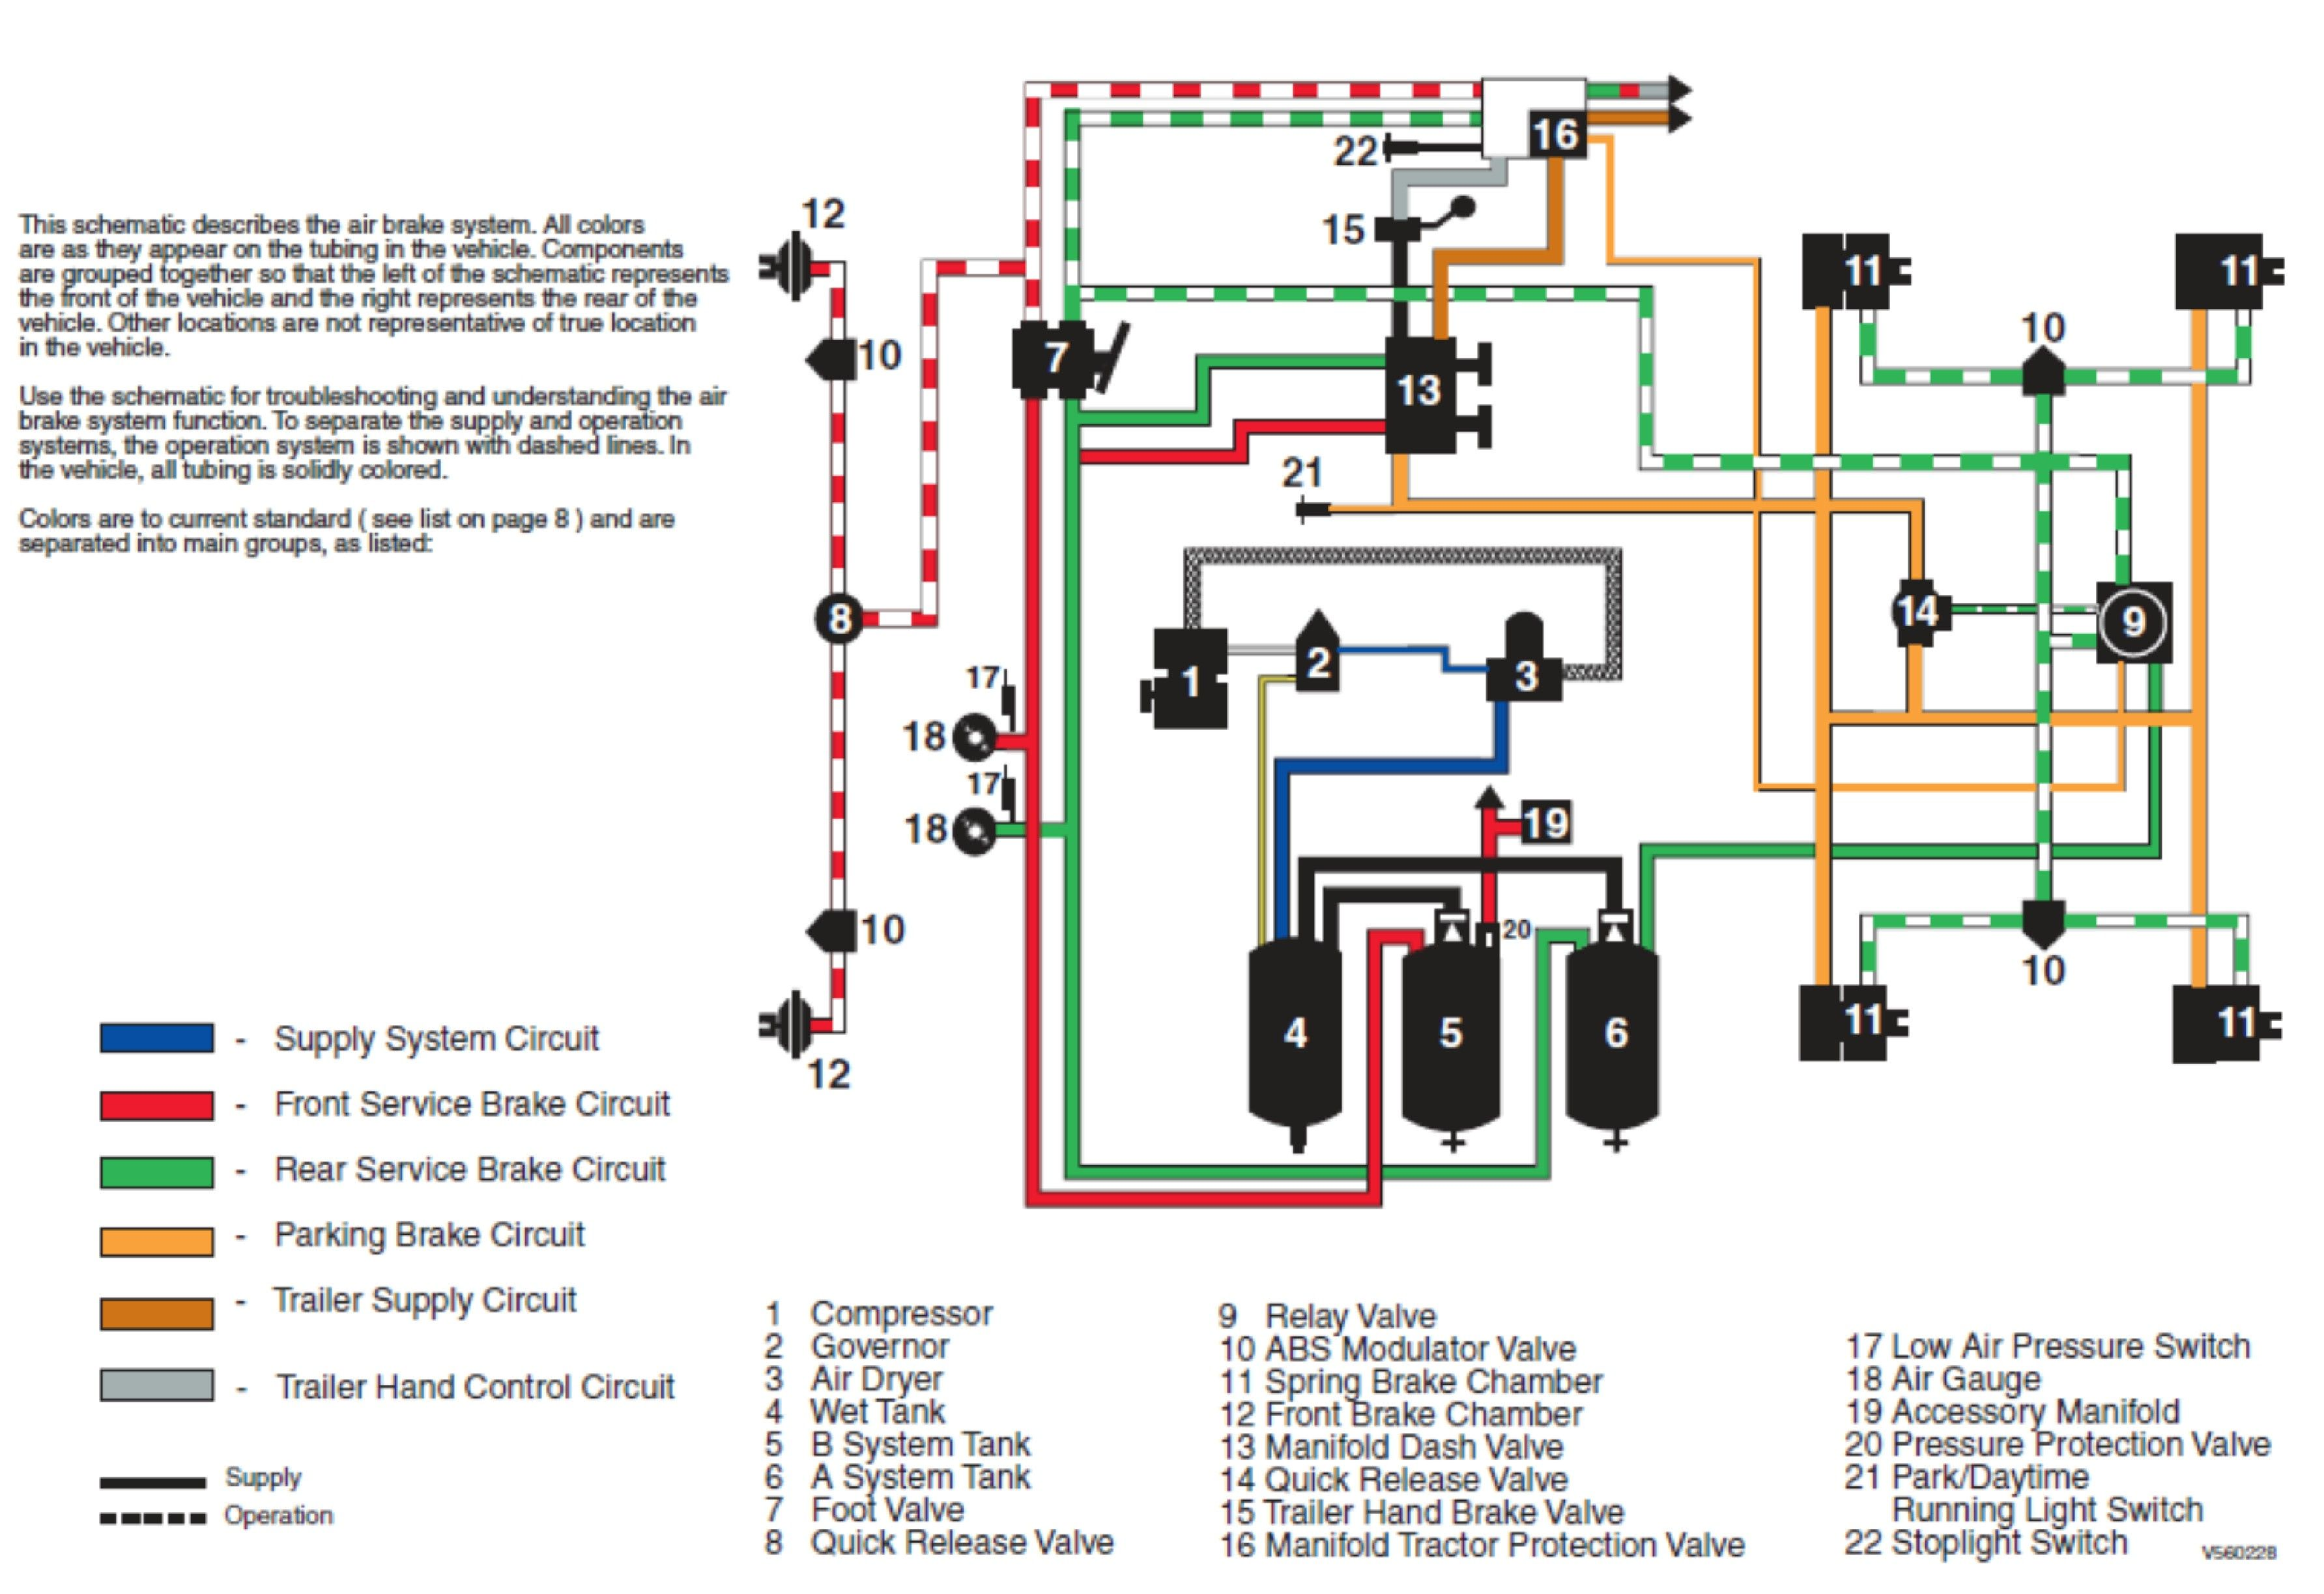 tractor trailer air brake system diagram air brake hyundai santa fe fuse box layout hyundai santa [ 3567 x 2446 Pixel ]